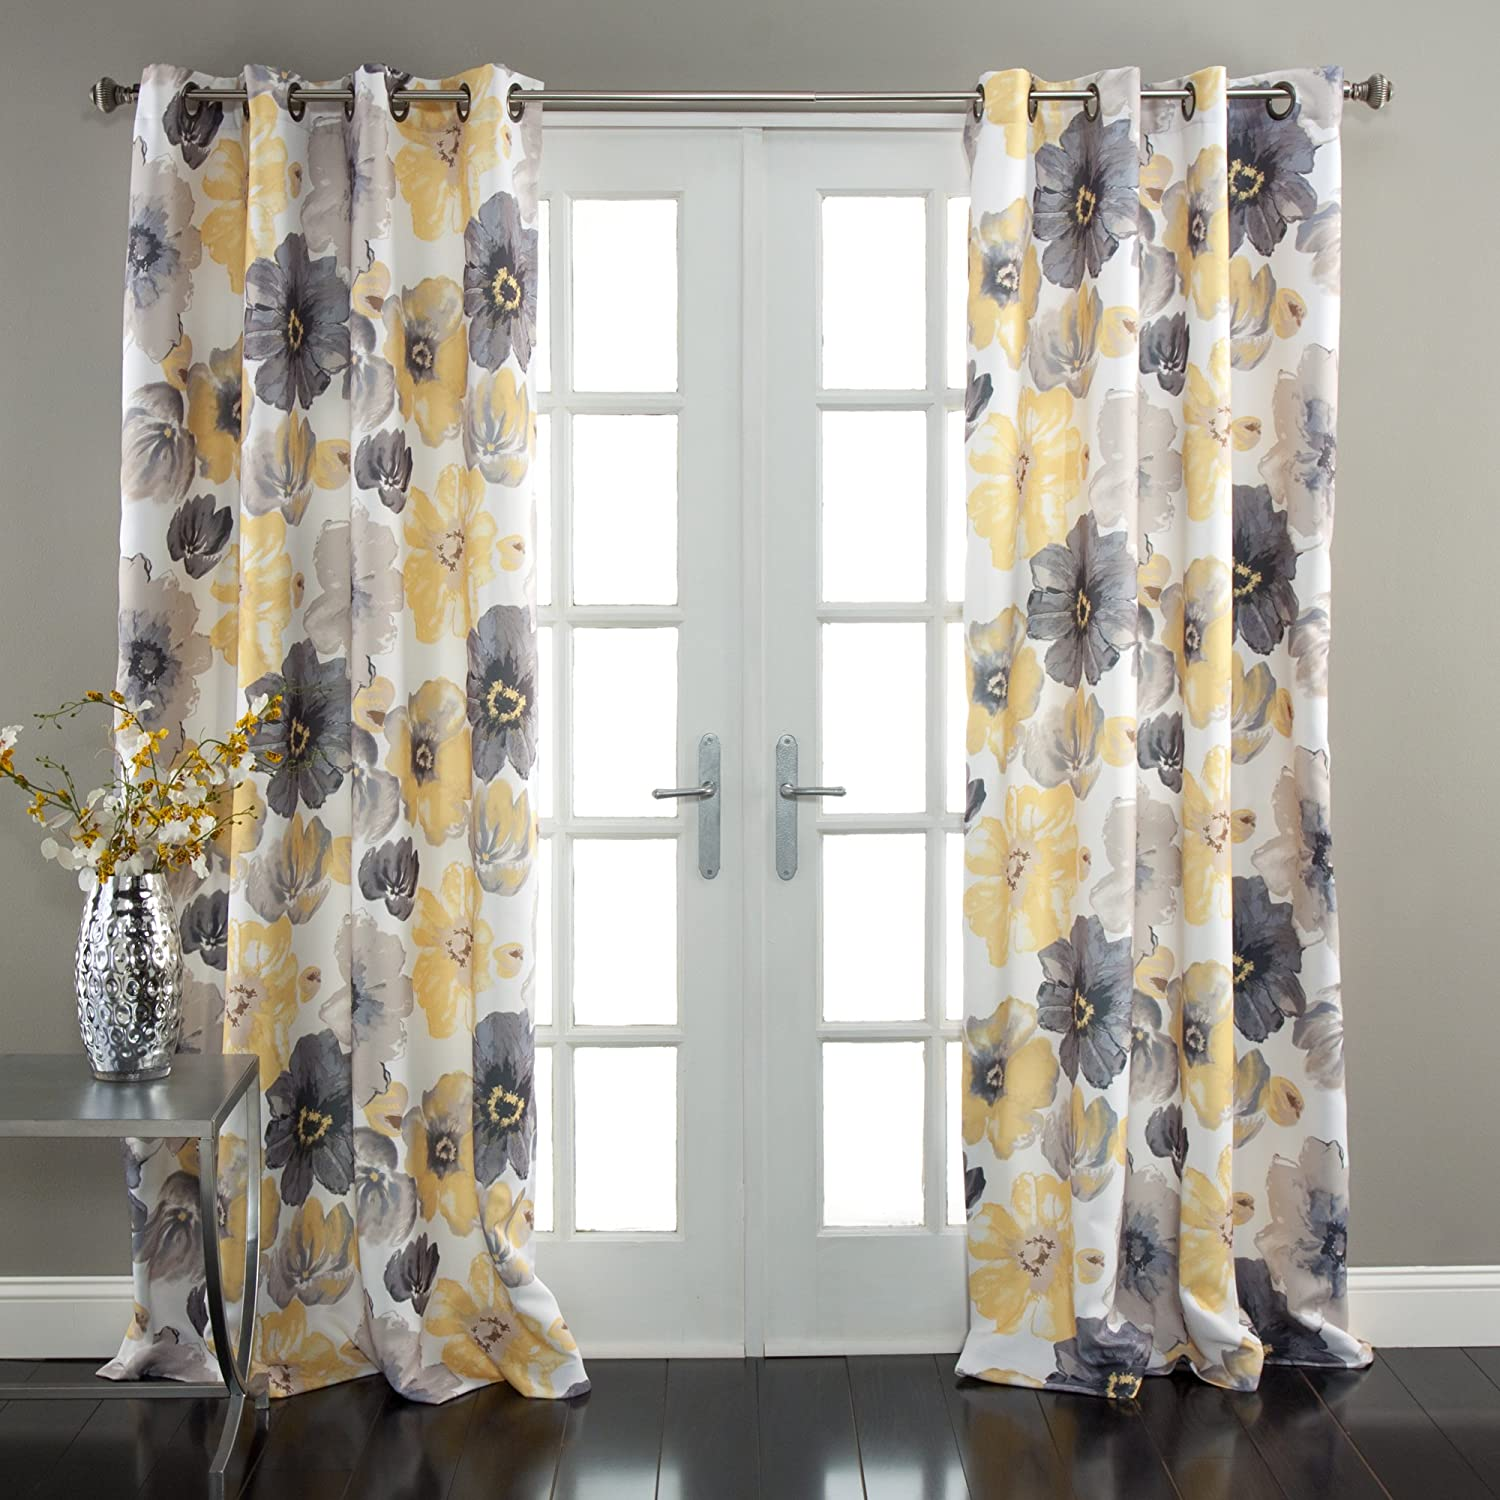 Lush Decor Leah Room Darkening Window Curtain Panel Pair Yellow/Gray, Set of 2